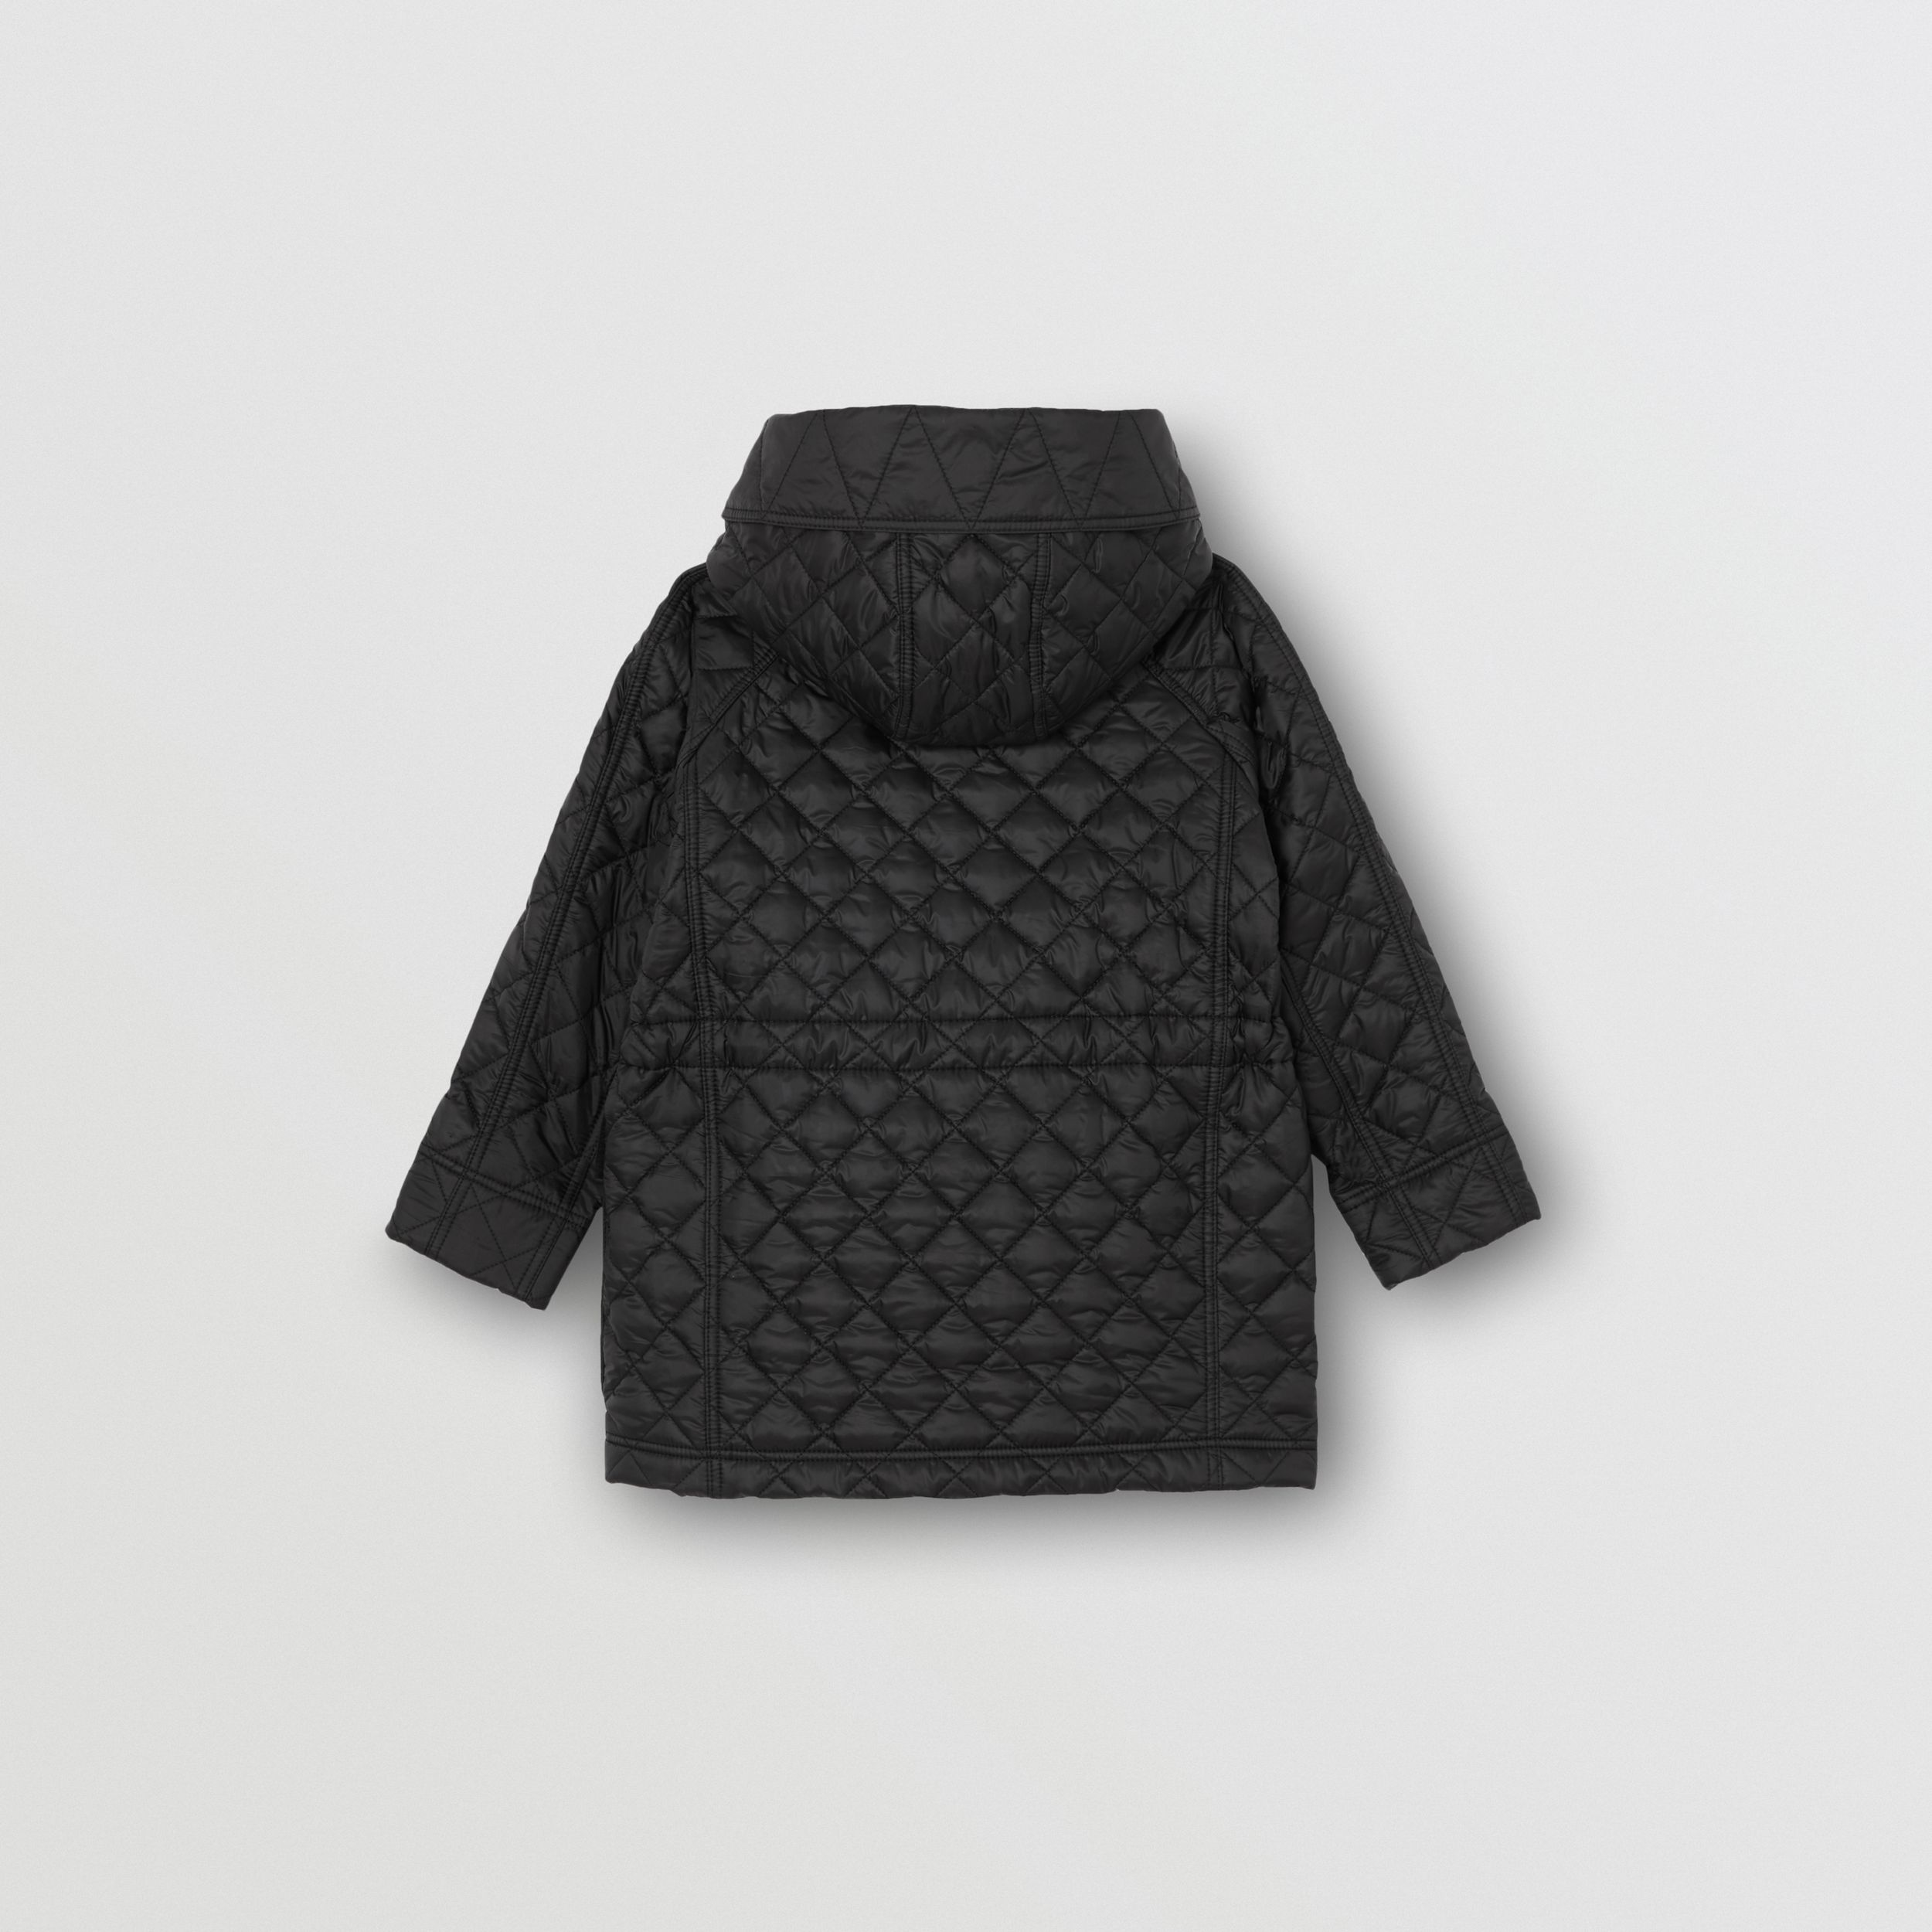 Diamond Quilted Hooded Coat in Black | Burberry - 4